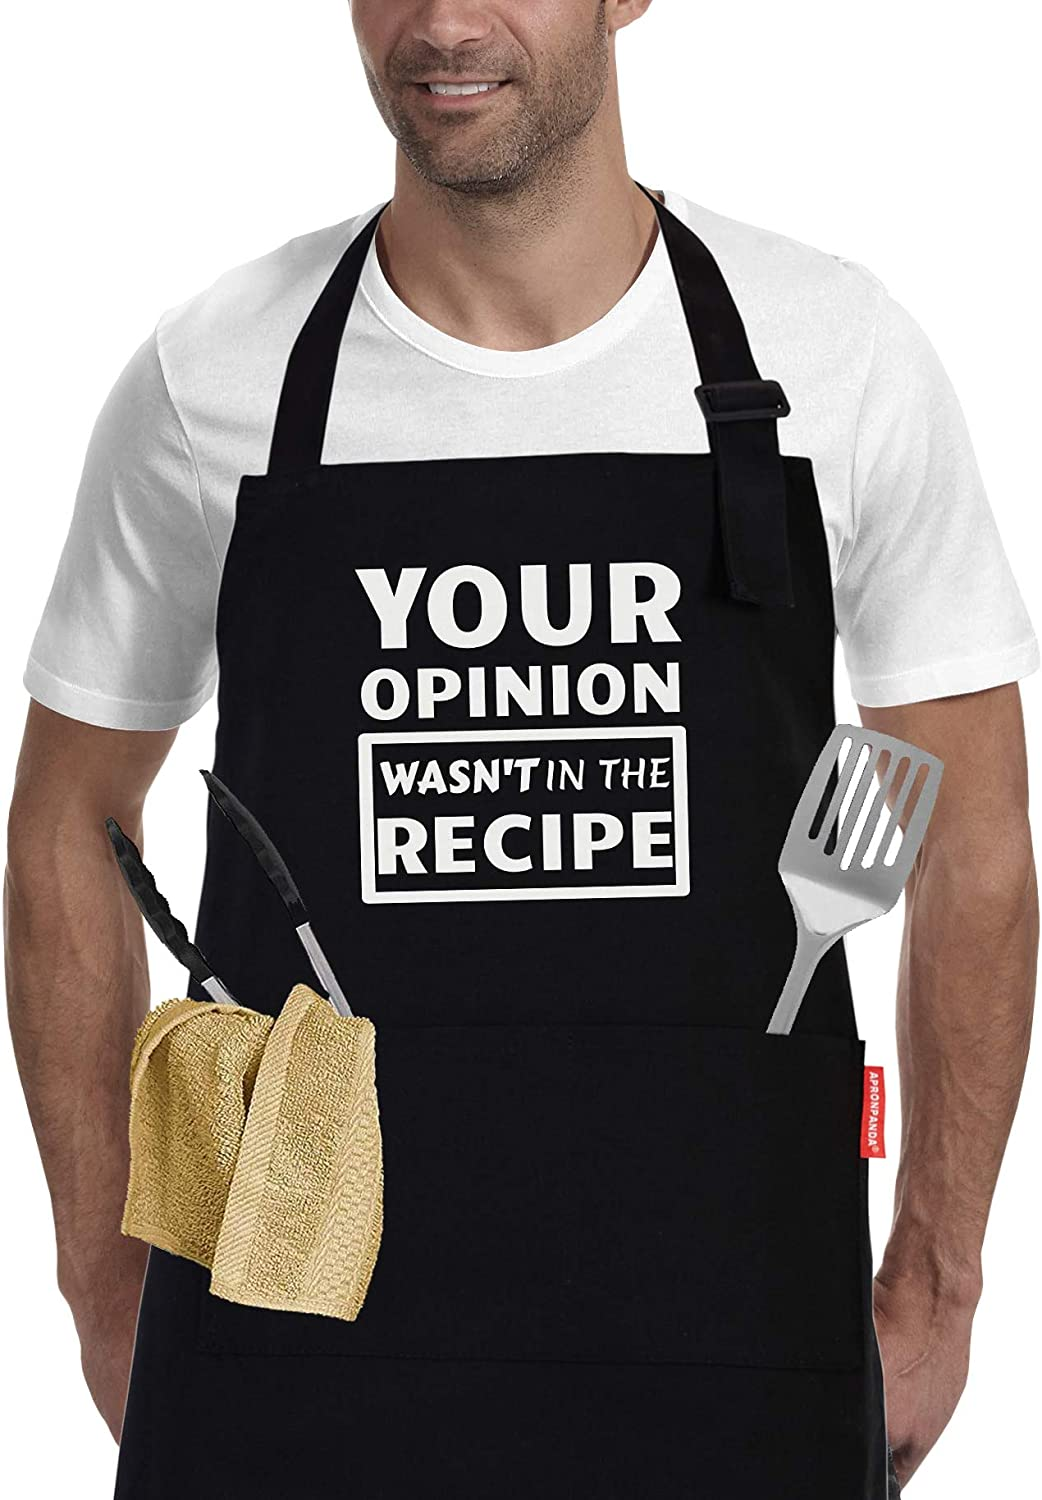 Funny Cooking Aprons for Men and Women Chef, Adjustable BBQ Grill Apron with Pockets - Birthday, Thanksgiving, Christmas Cooking Gifts for Wife, Husband, Mom, Dad